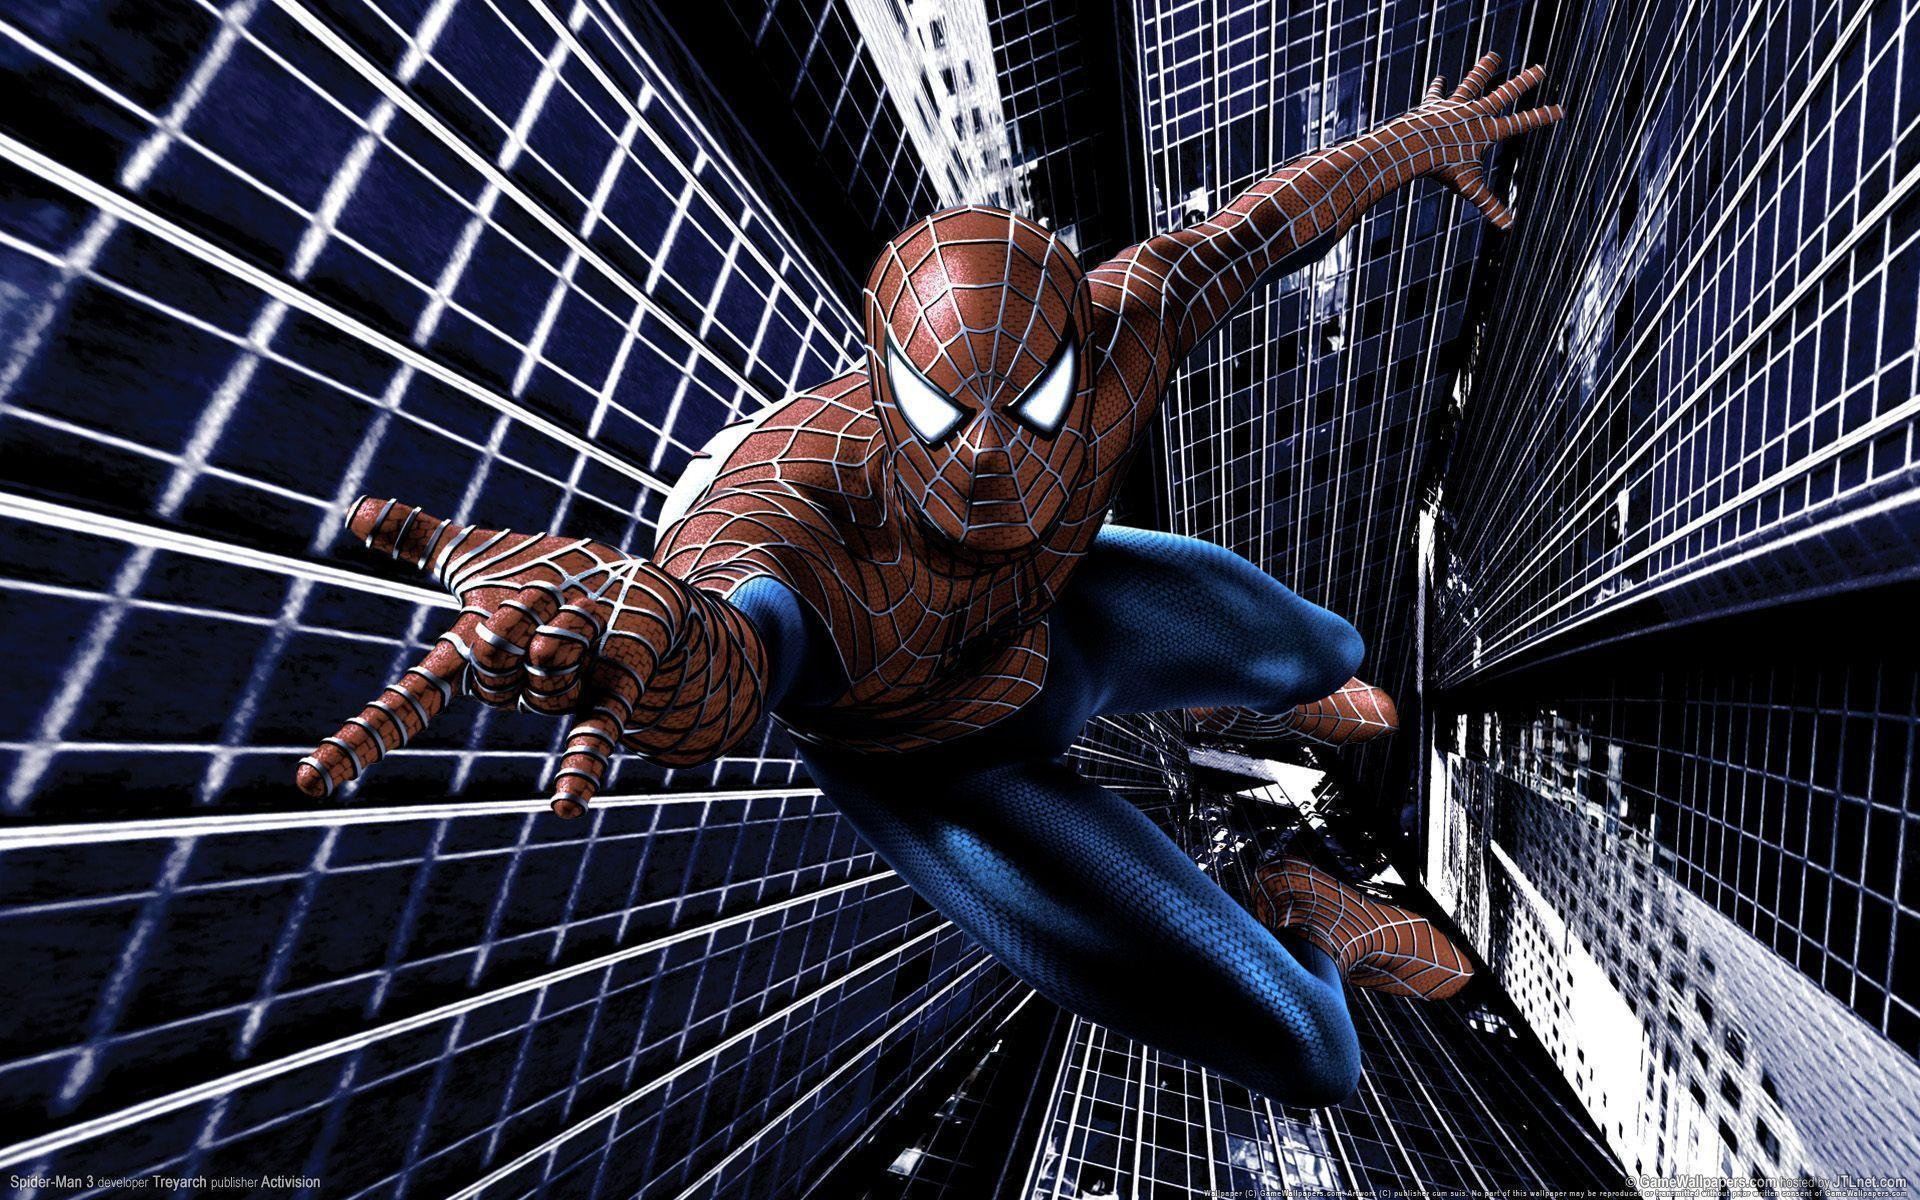 Spider Man 3 Wallpapers - Full HD wallpaper search